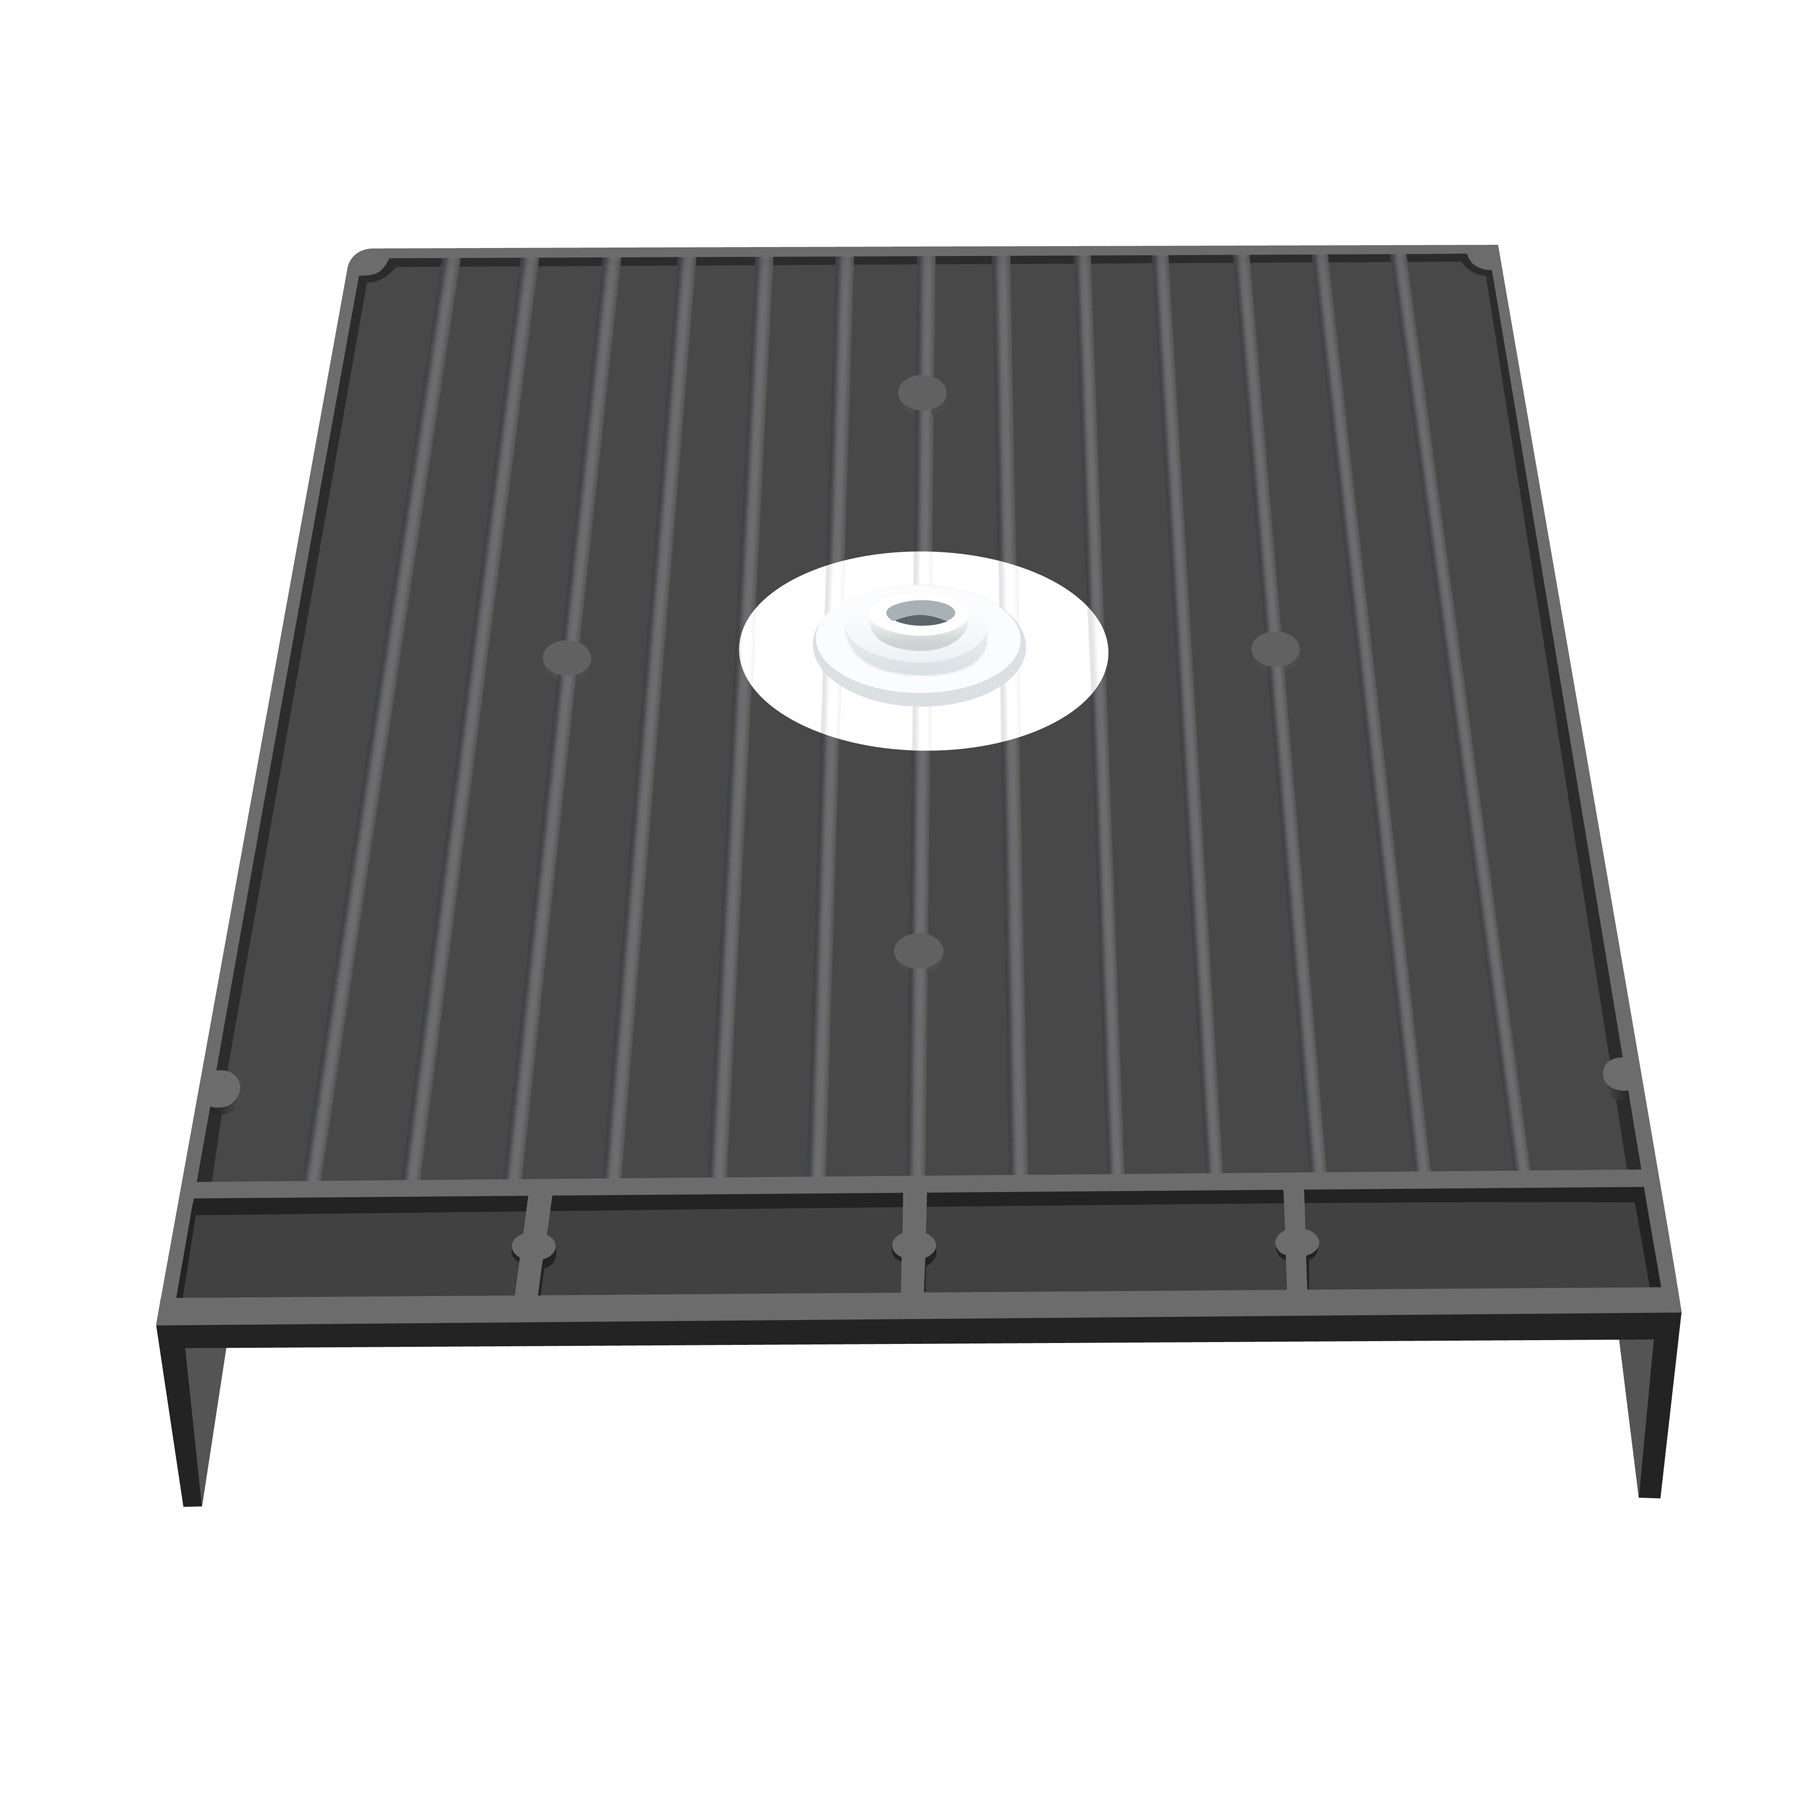 Shop Redi Base 46 X 38 Barrier Free Shower Pan With Center Drain